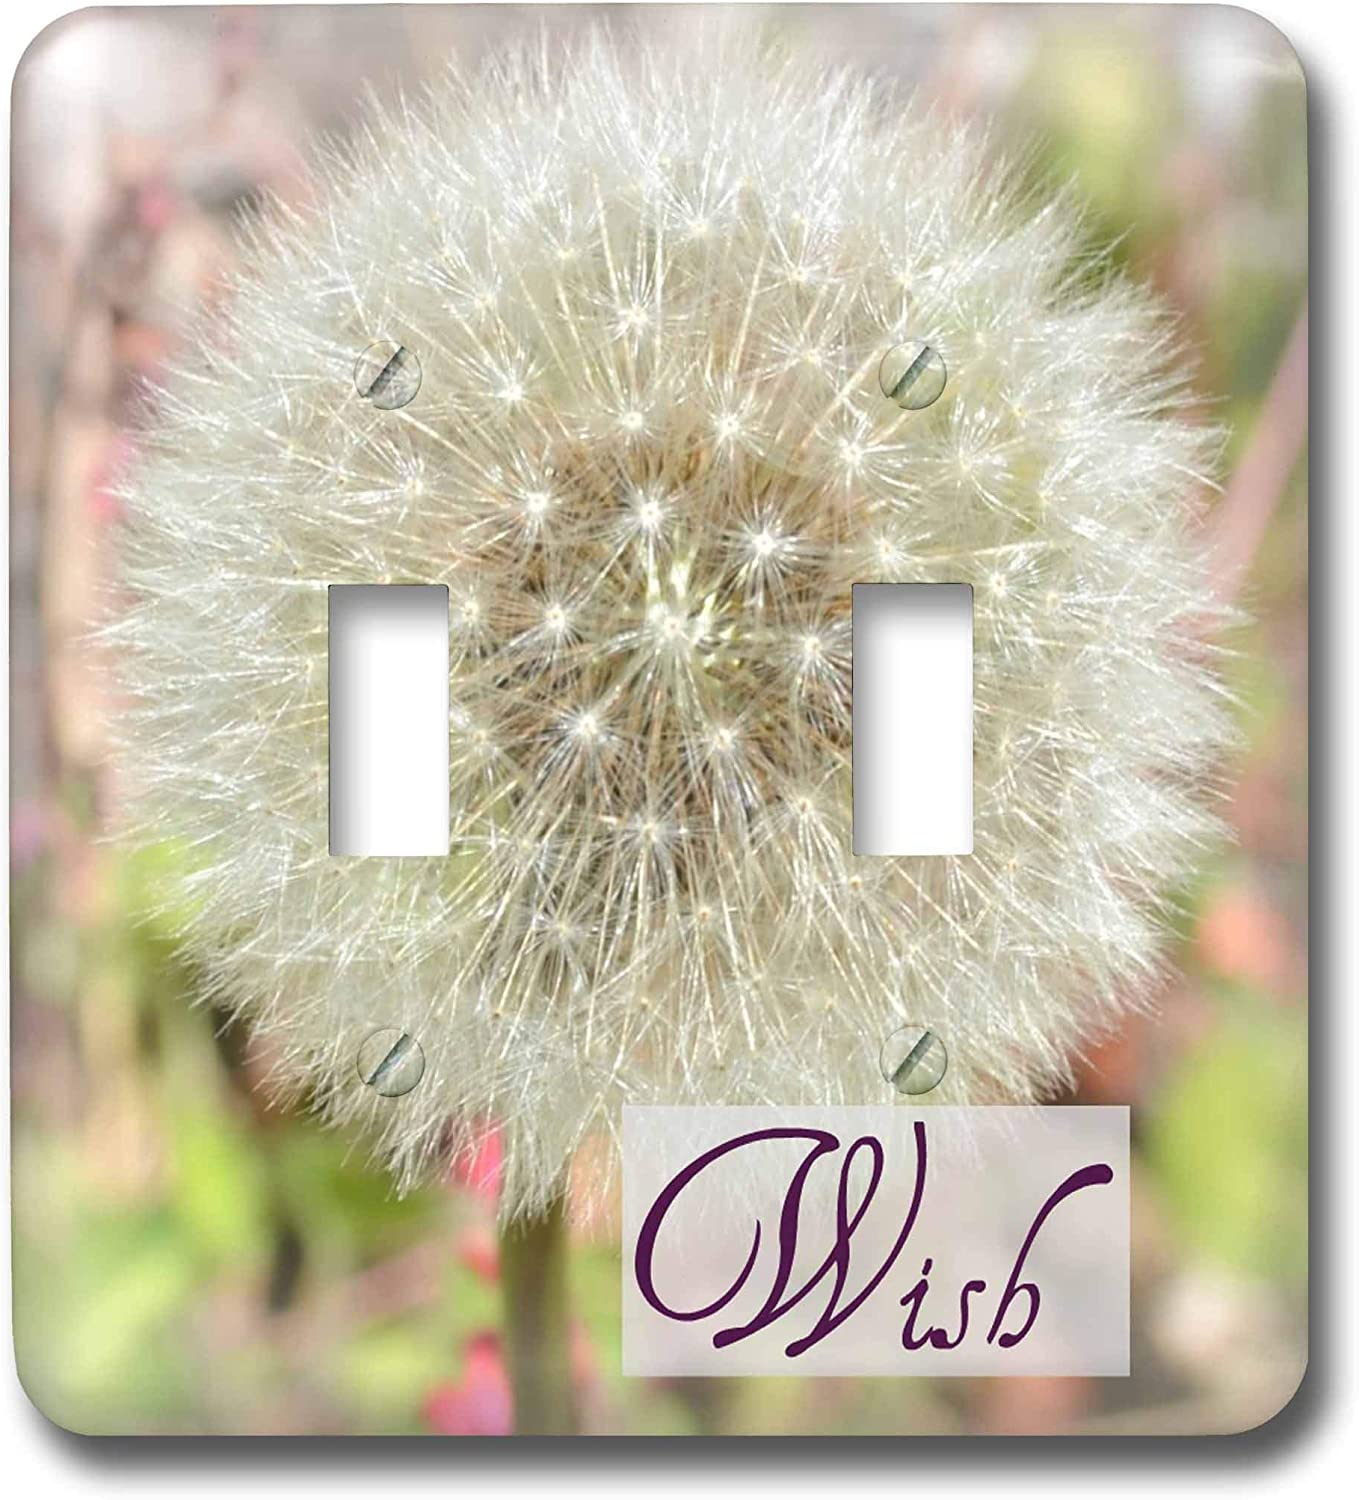 3drose Lsp 31469 2 Dandelion Wish Inspirational Quotes Flowers Toggle Switch Multi Color Switch Plates